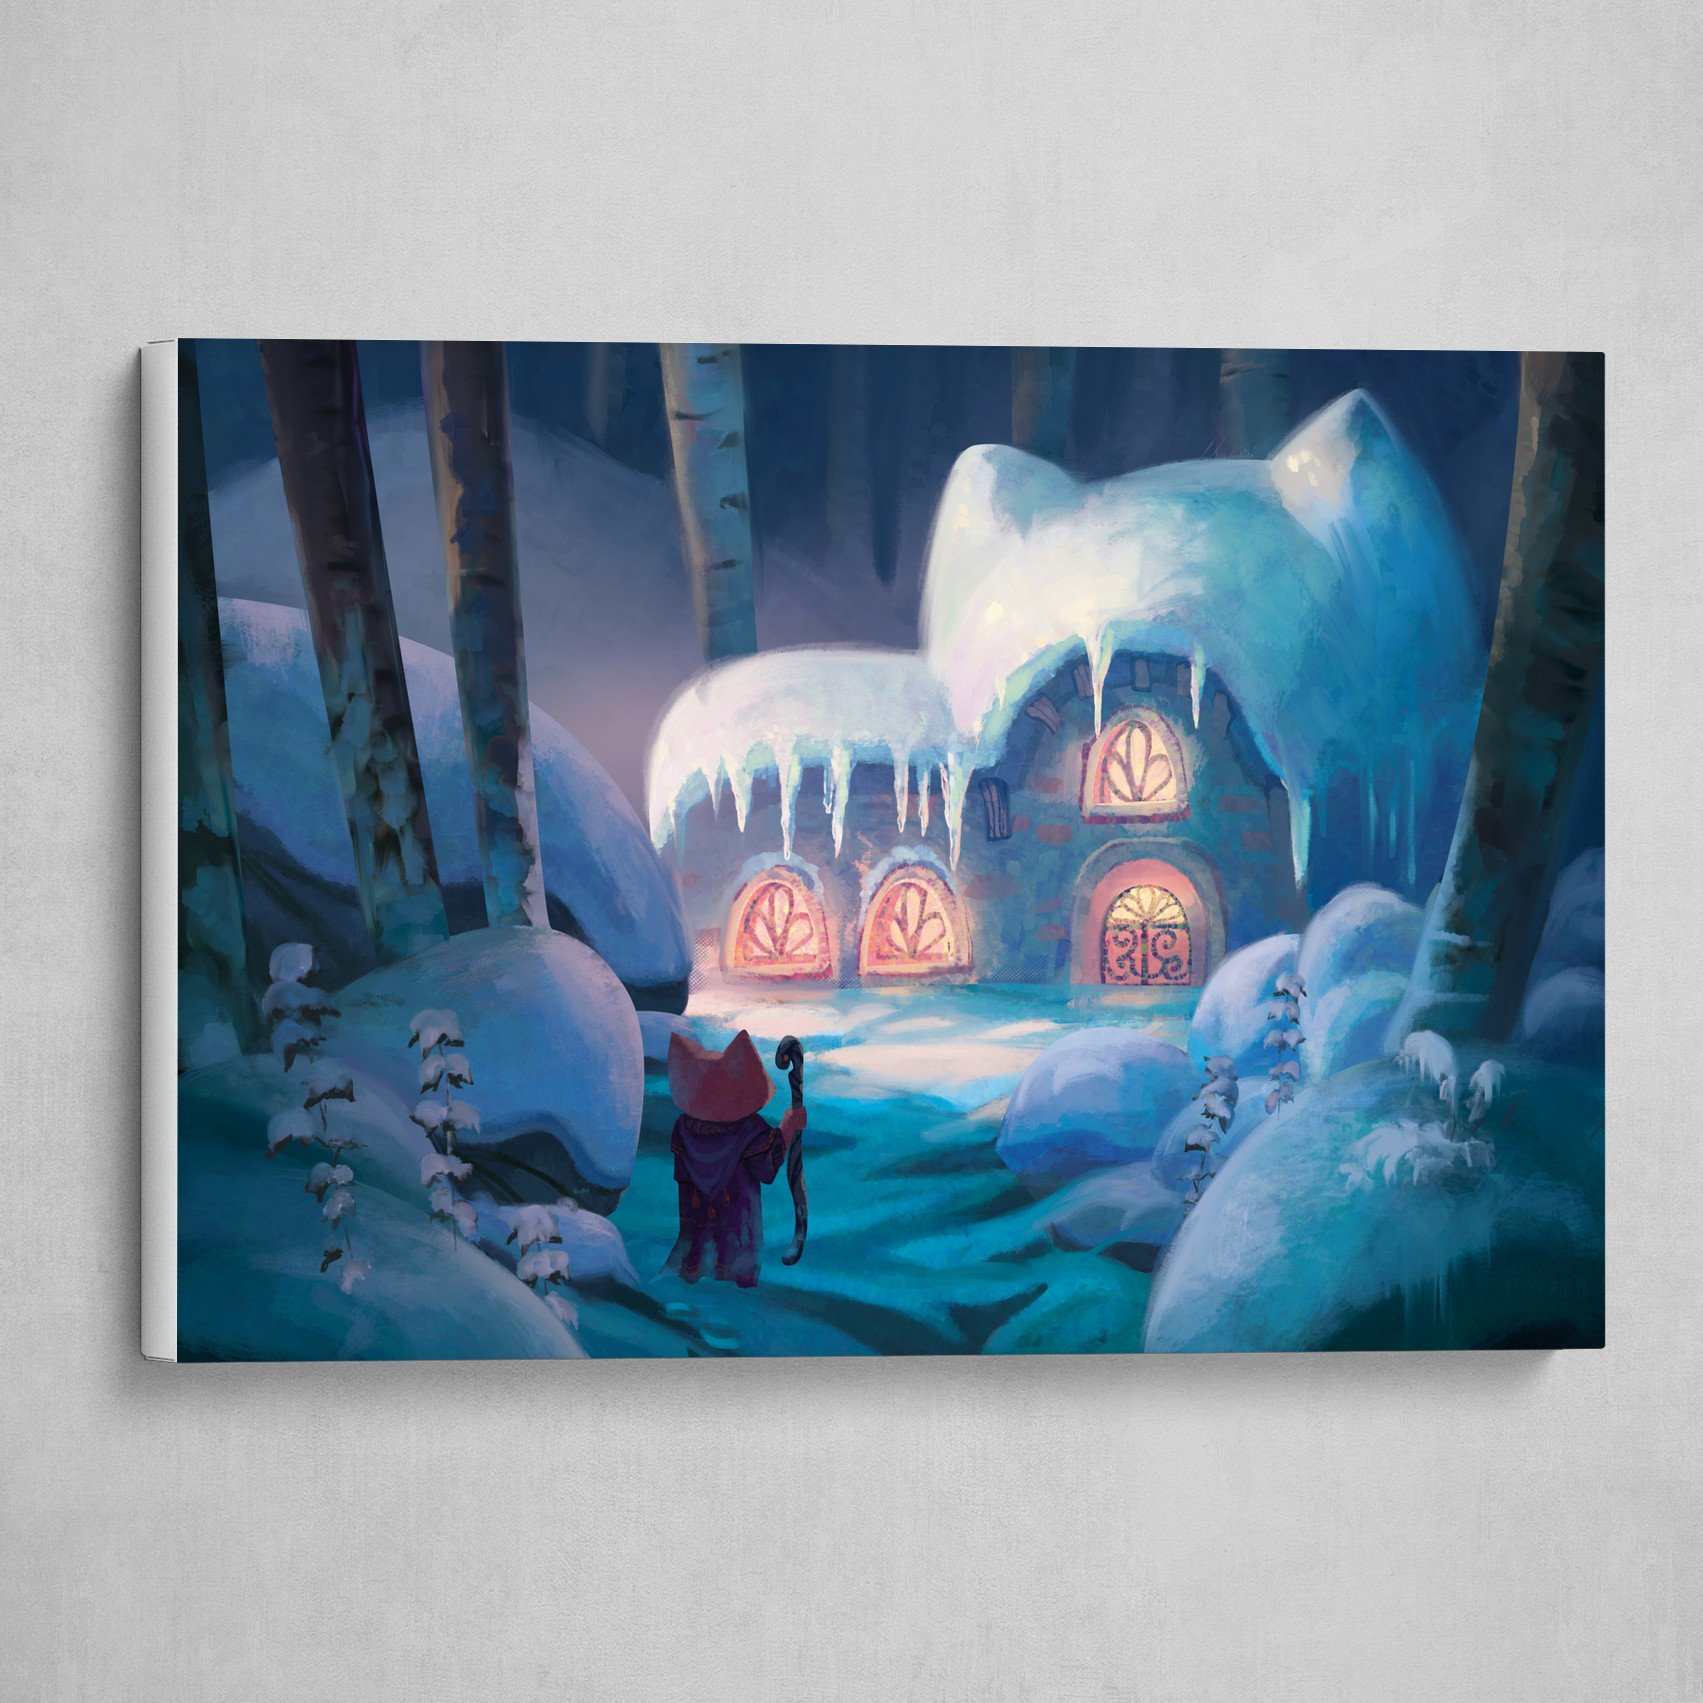 Coming Home - Cute, Magical Snowy Winter Forest Hut